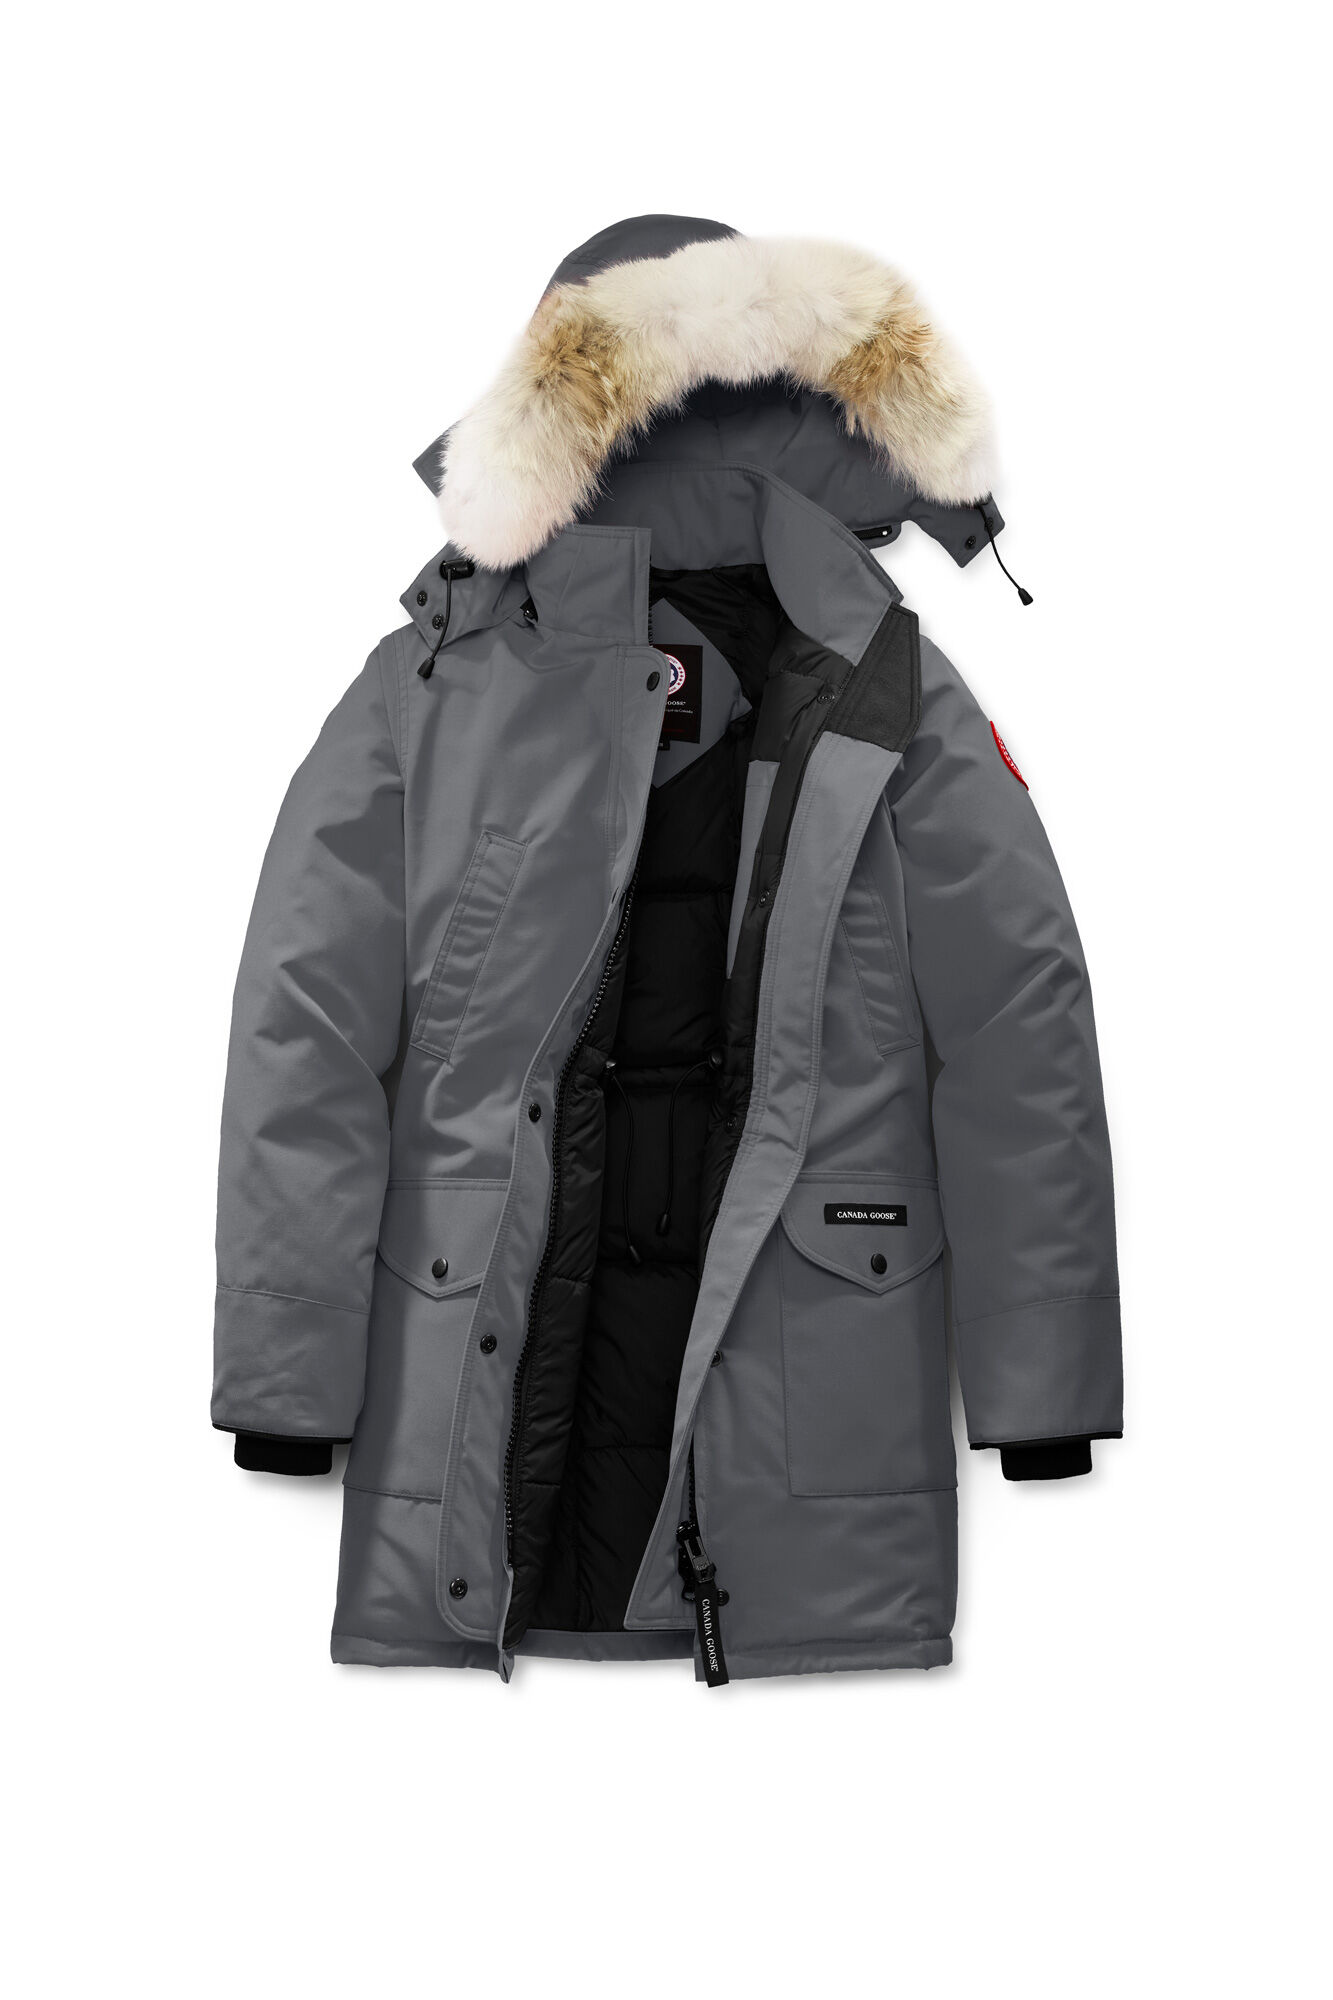 canada goose jacket washing